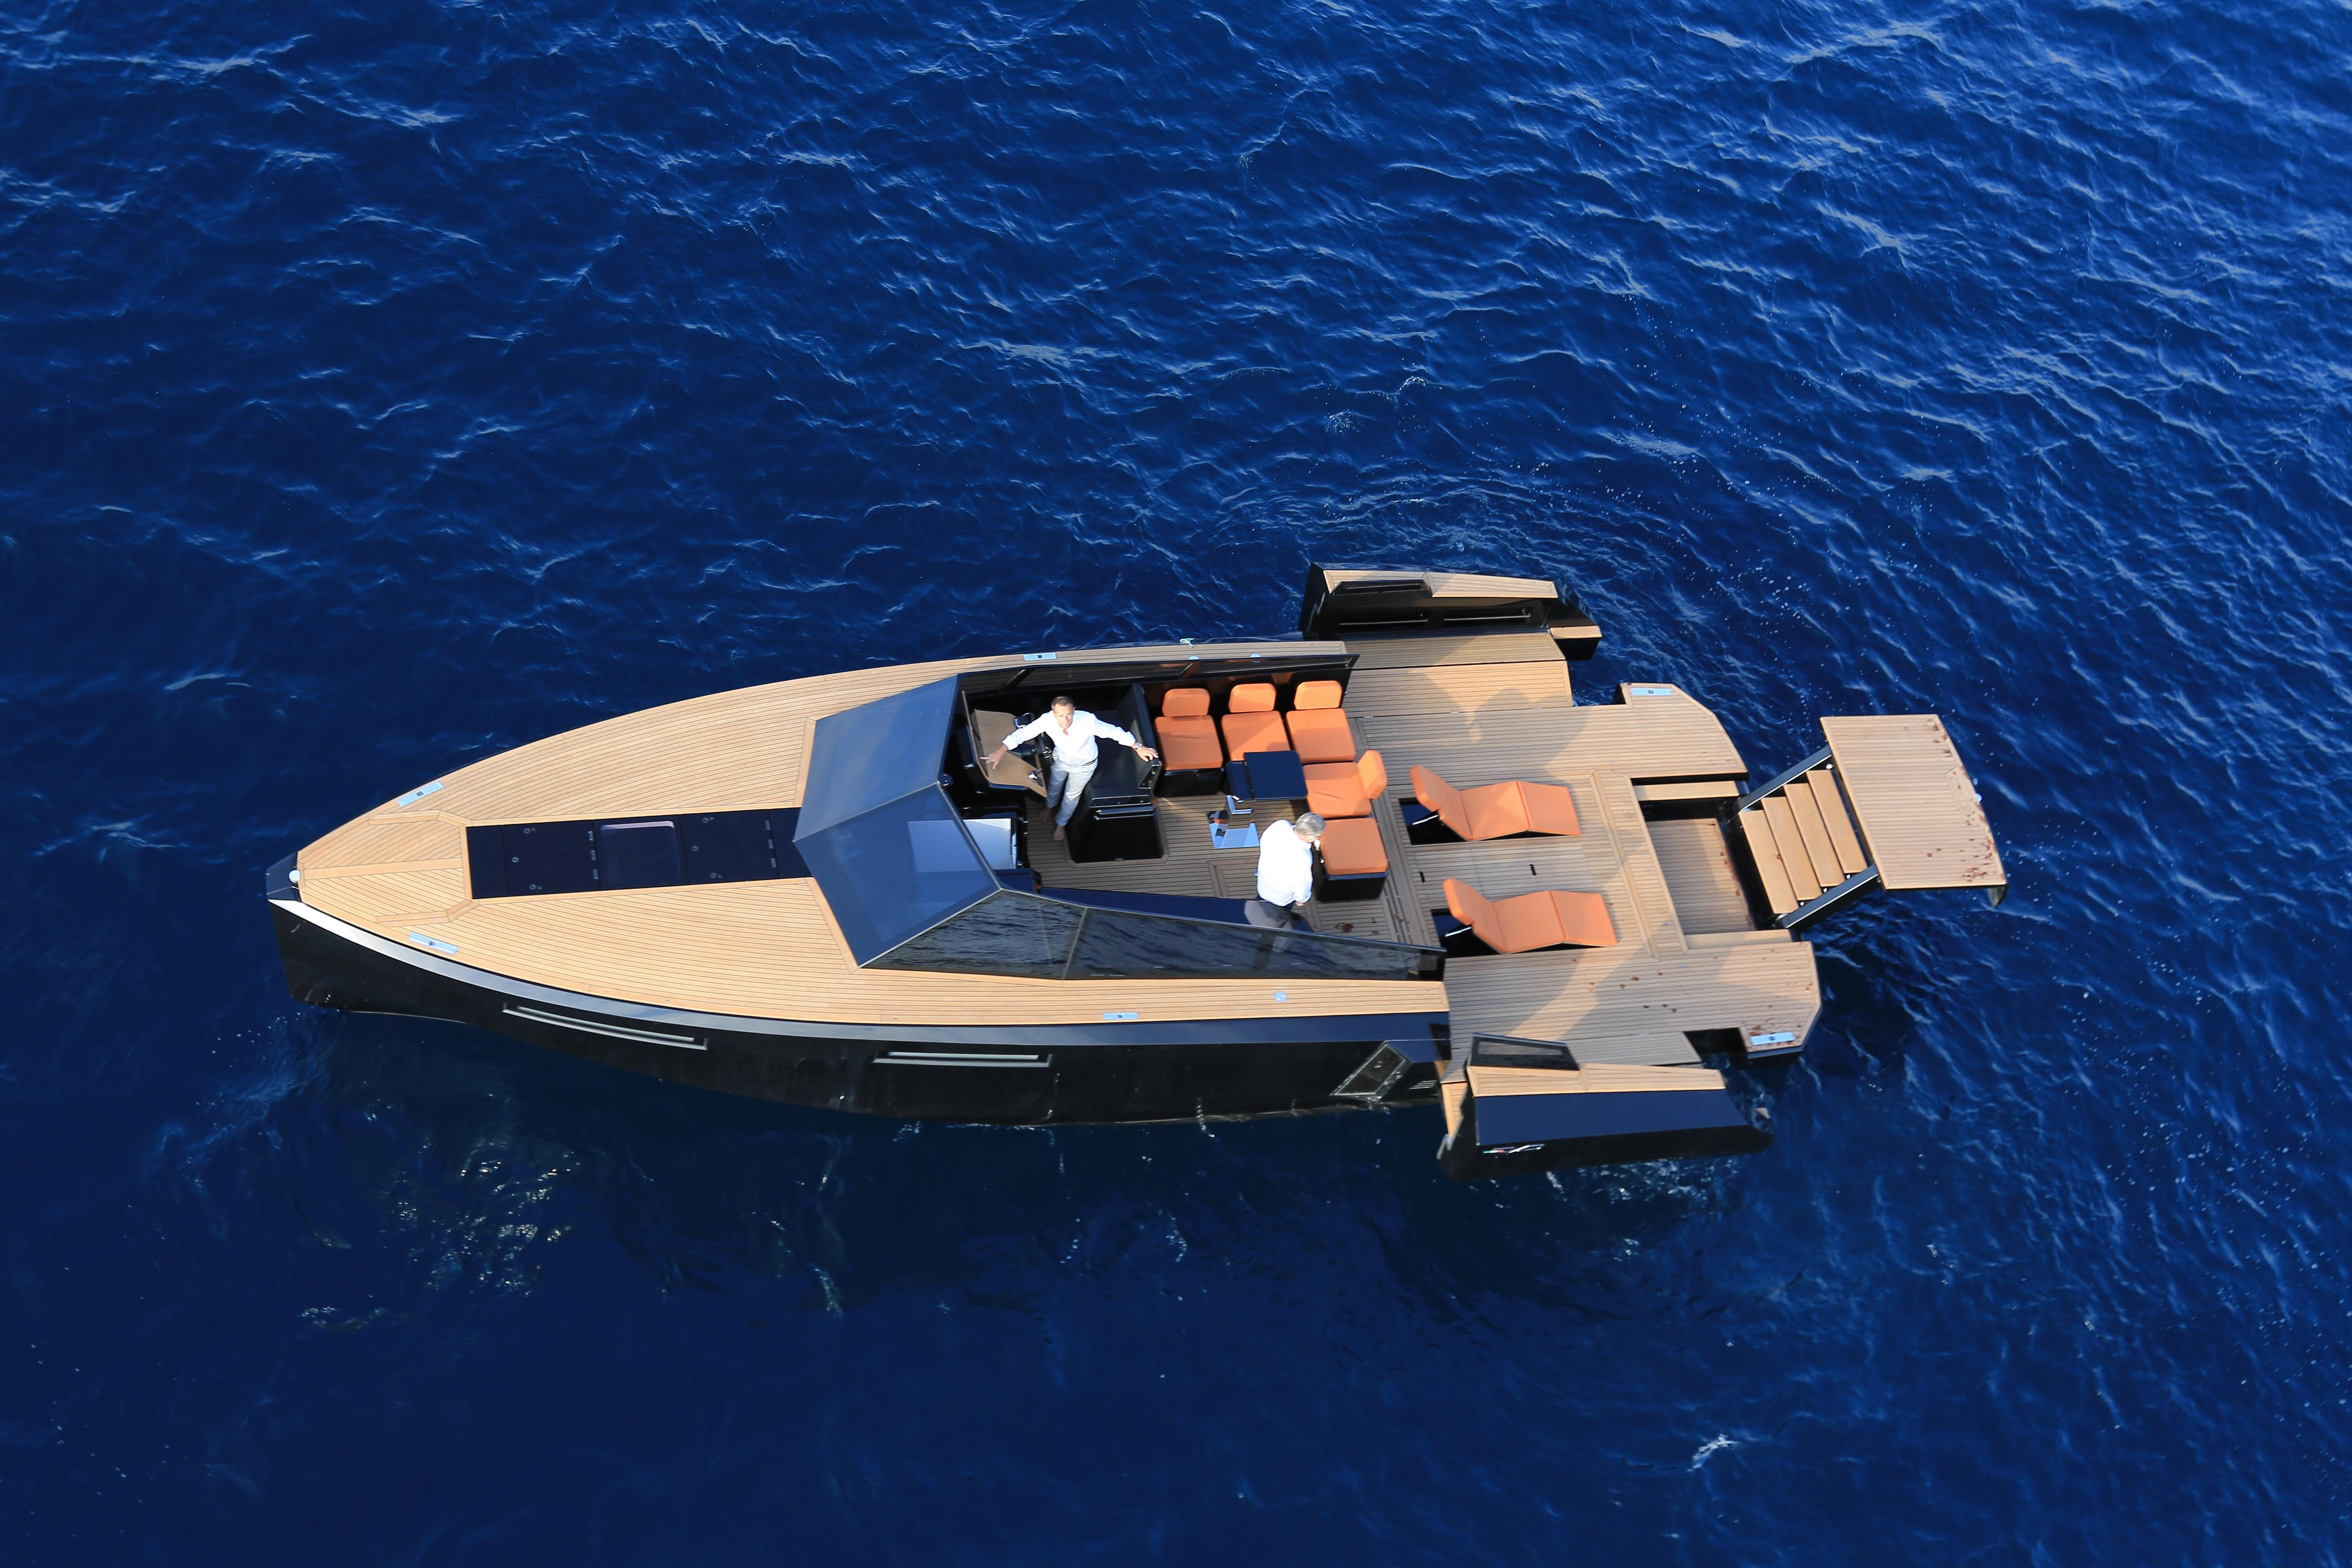 """The Large Aft Platform - Built-in Into The Beach Area �"""" Can Be Mechanically Extended And Rotated On Its Longitudinal Axis By Almost 270°, Providing Total Flexibility. This Modular Platform Can Be Used With Ease To Support Boarding O"""